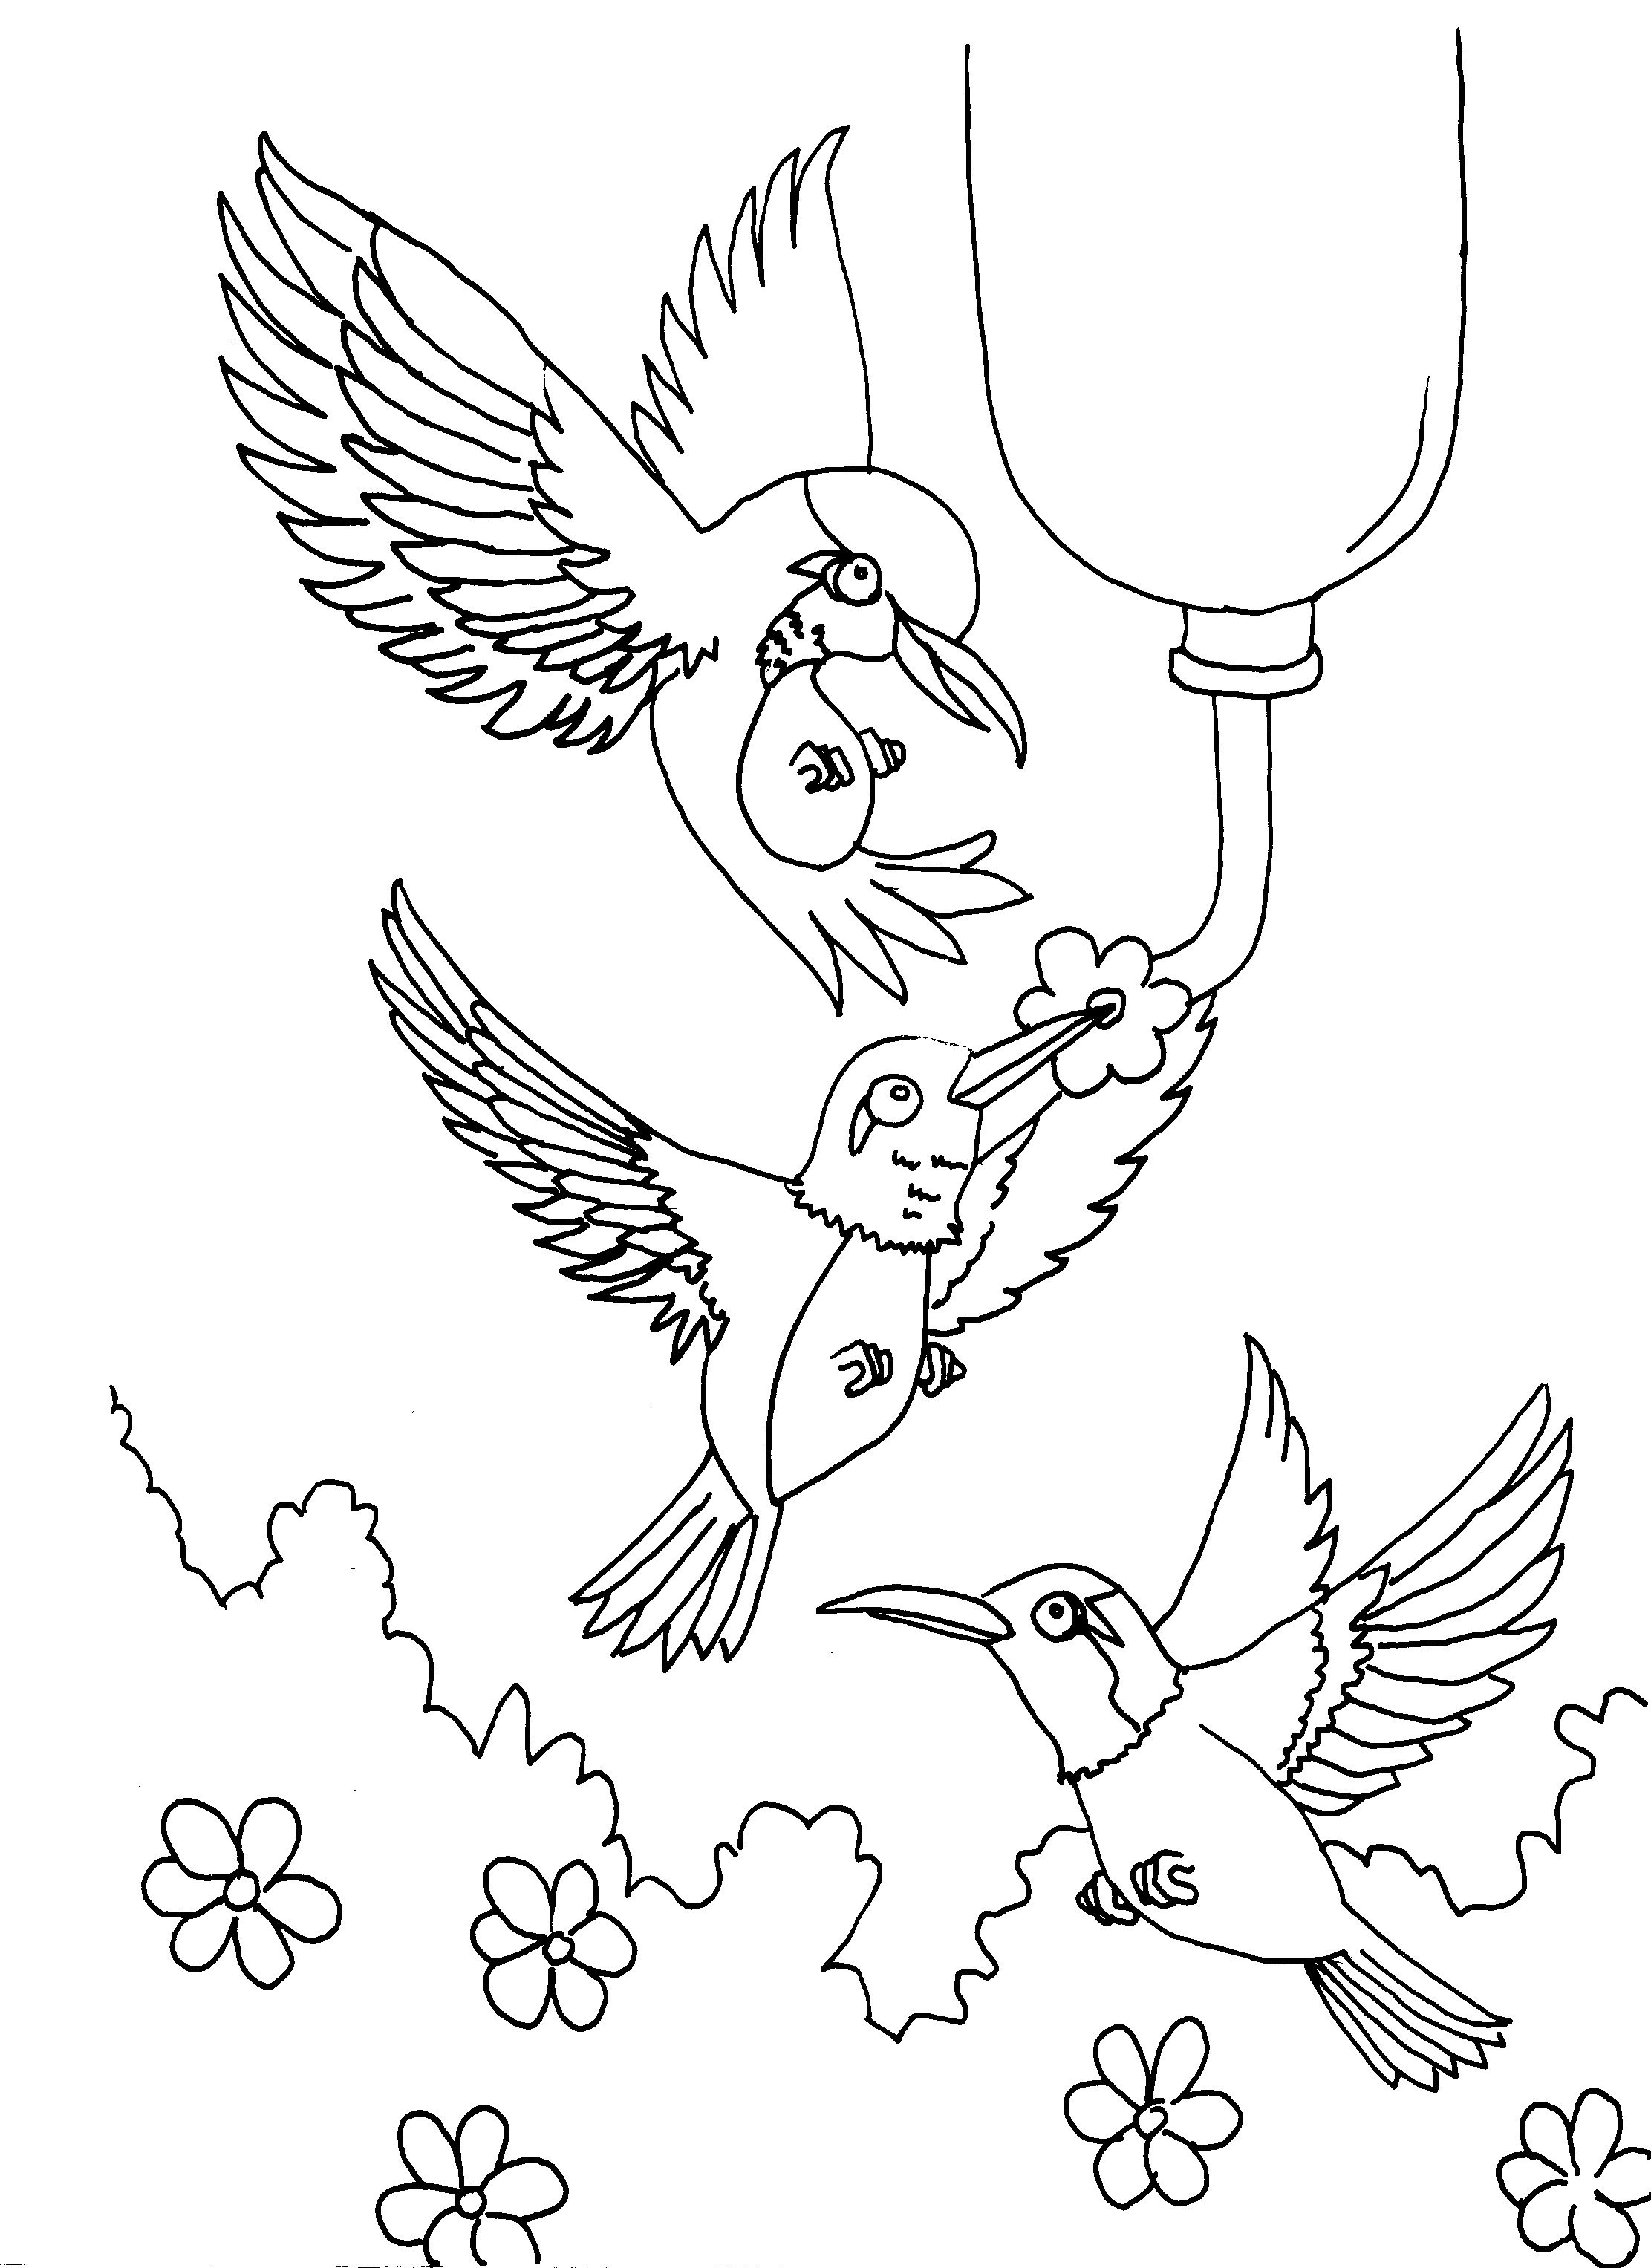 hummingbird coloring pictures hummingbird coloring pages to download and print for free coloring pictures hummingbird